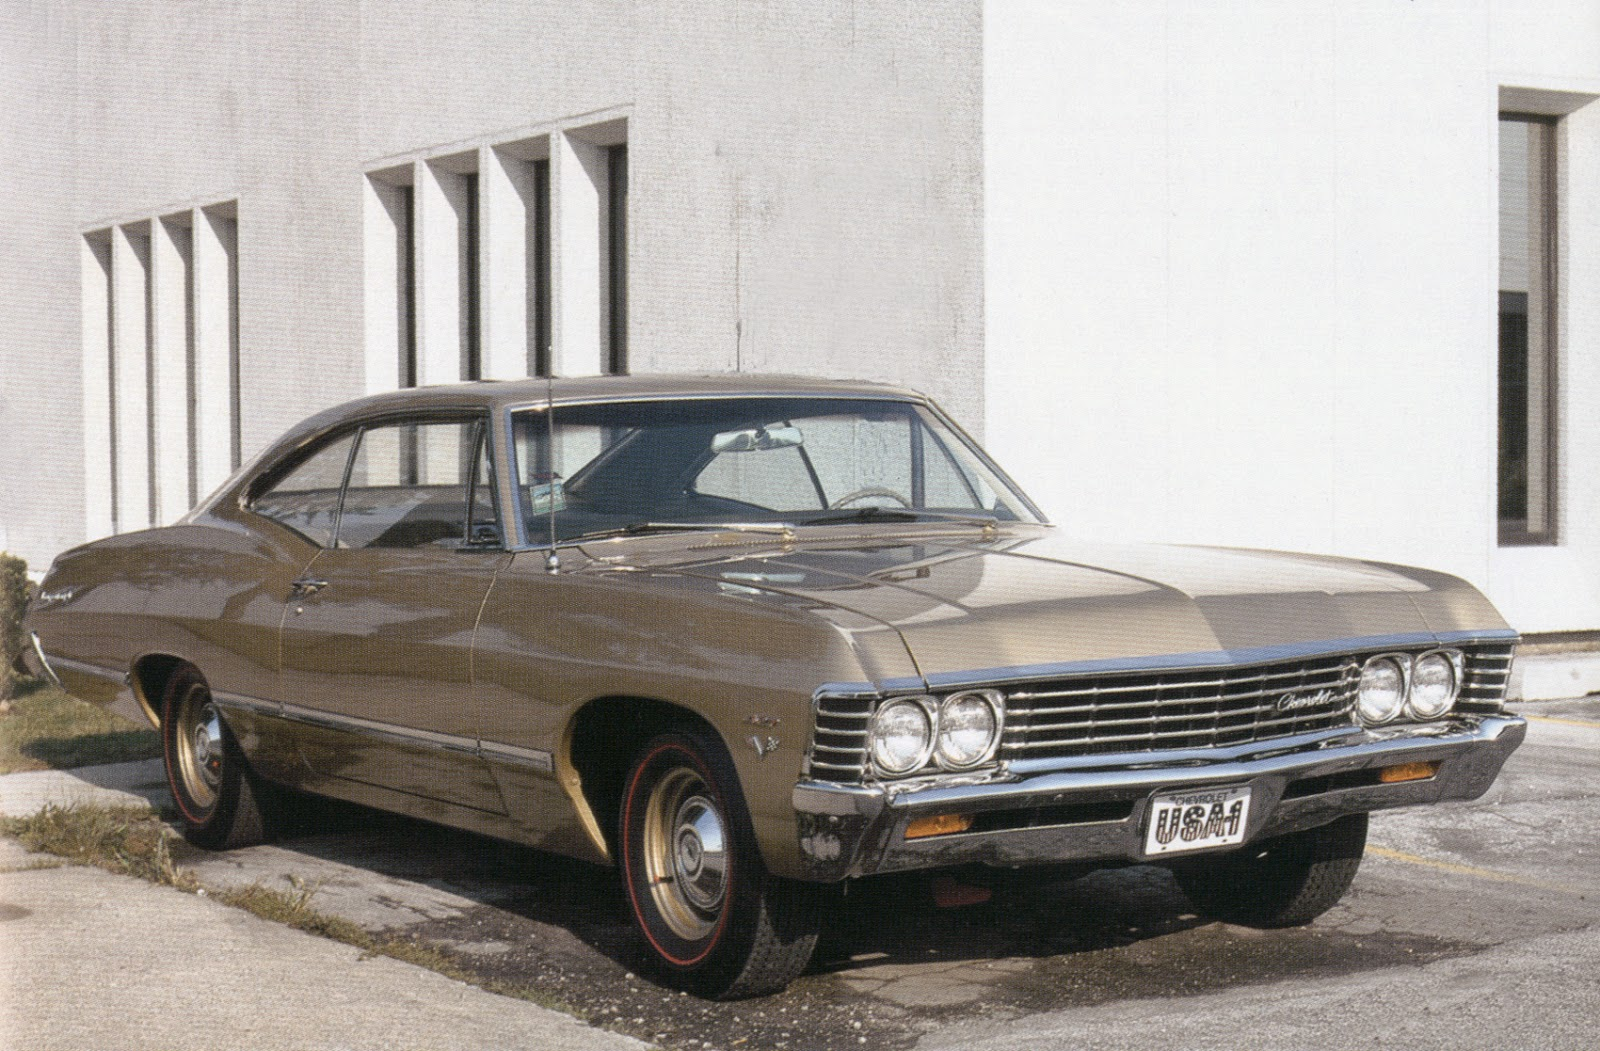 Some Impalas were made with the 427 engine and no SS package.